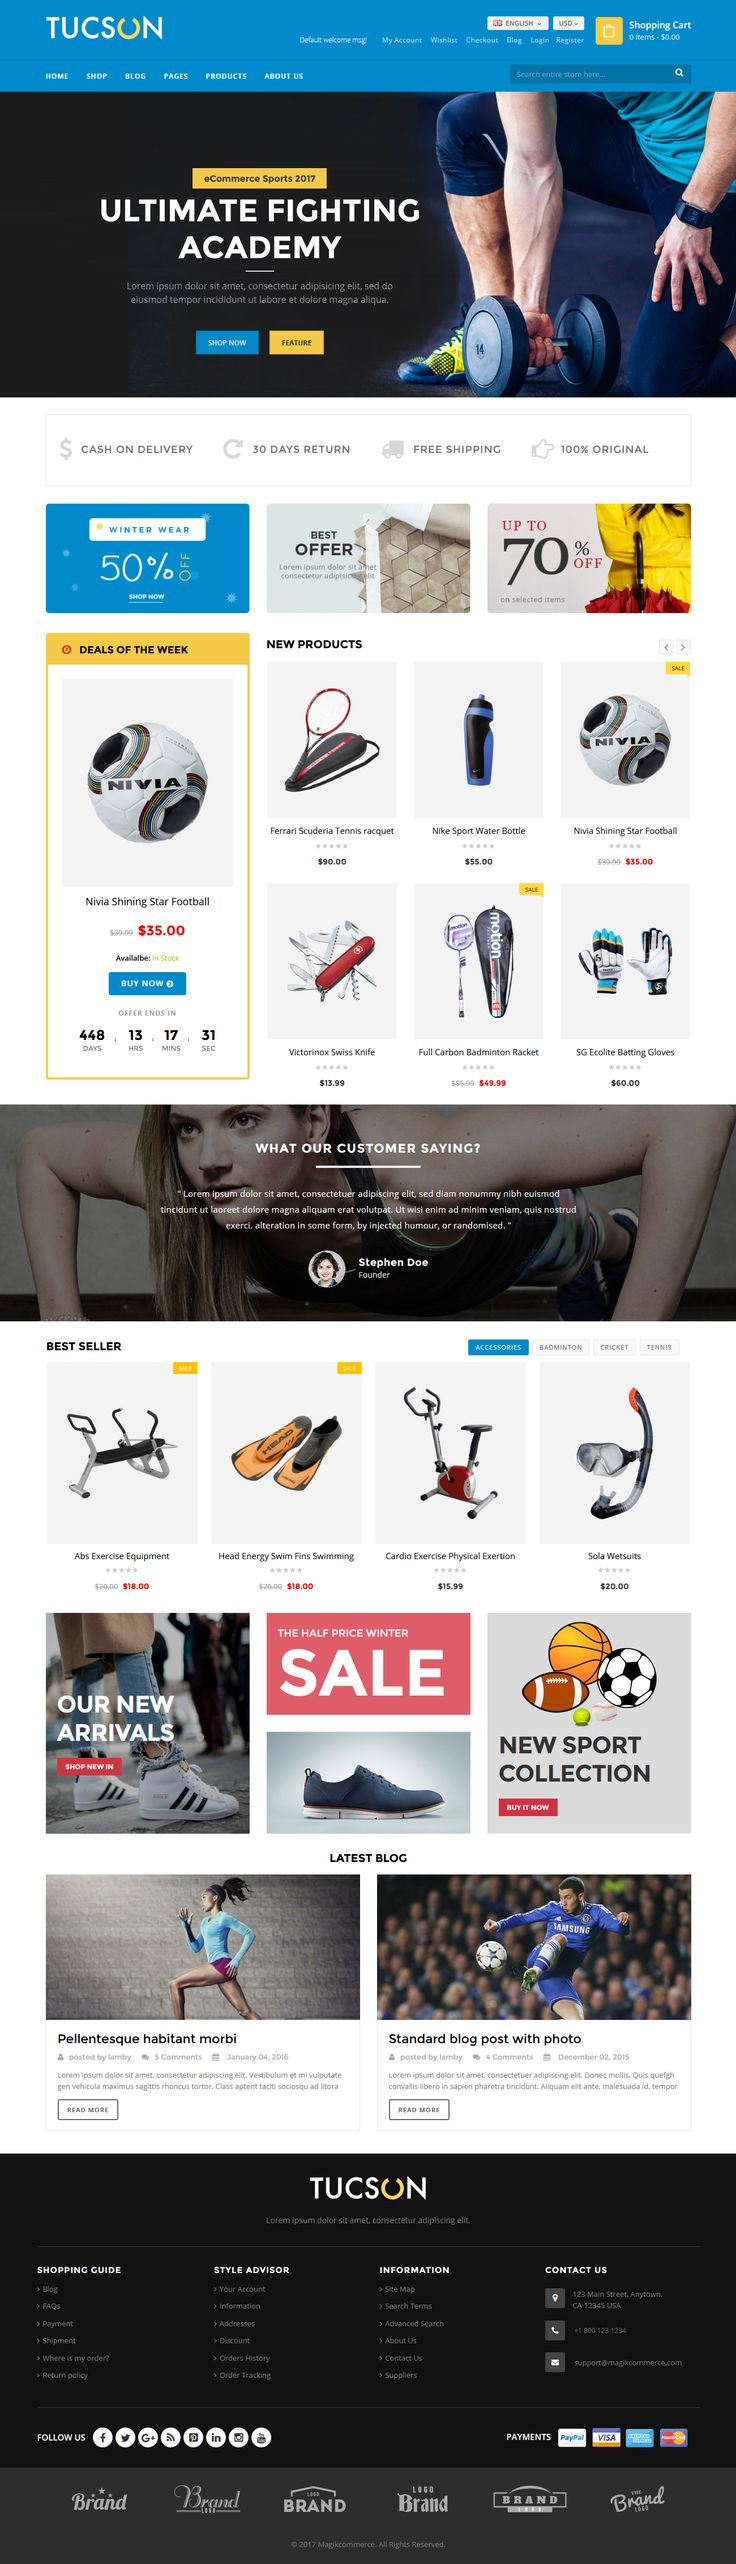 Tucson WordPress Theme This is a responsive WordPress theme designed for sports stores, sports shops, gyms and businesses selling sports gear, sportswear, equipment, gymming tools and other re... #webdesign #uidesign #website